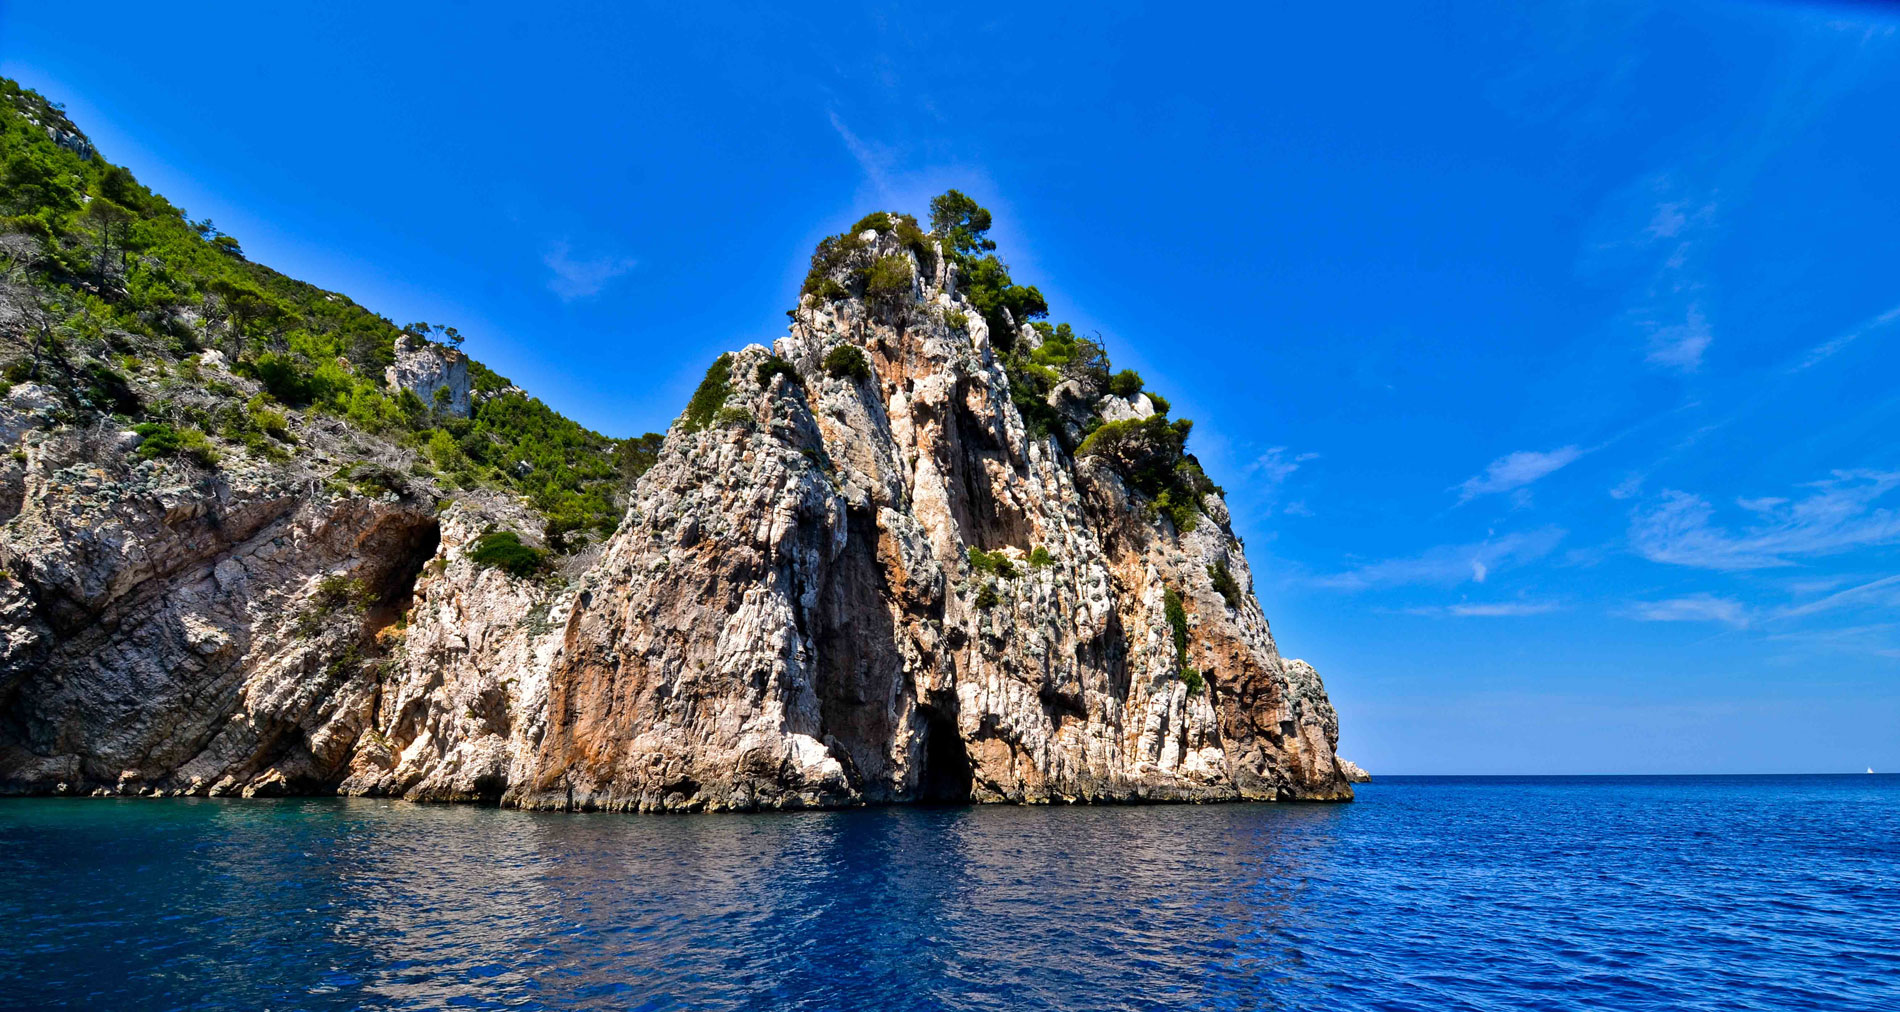 Active holidays - Island of Vis - Croatia - boat tour